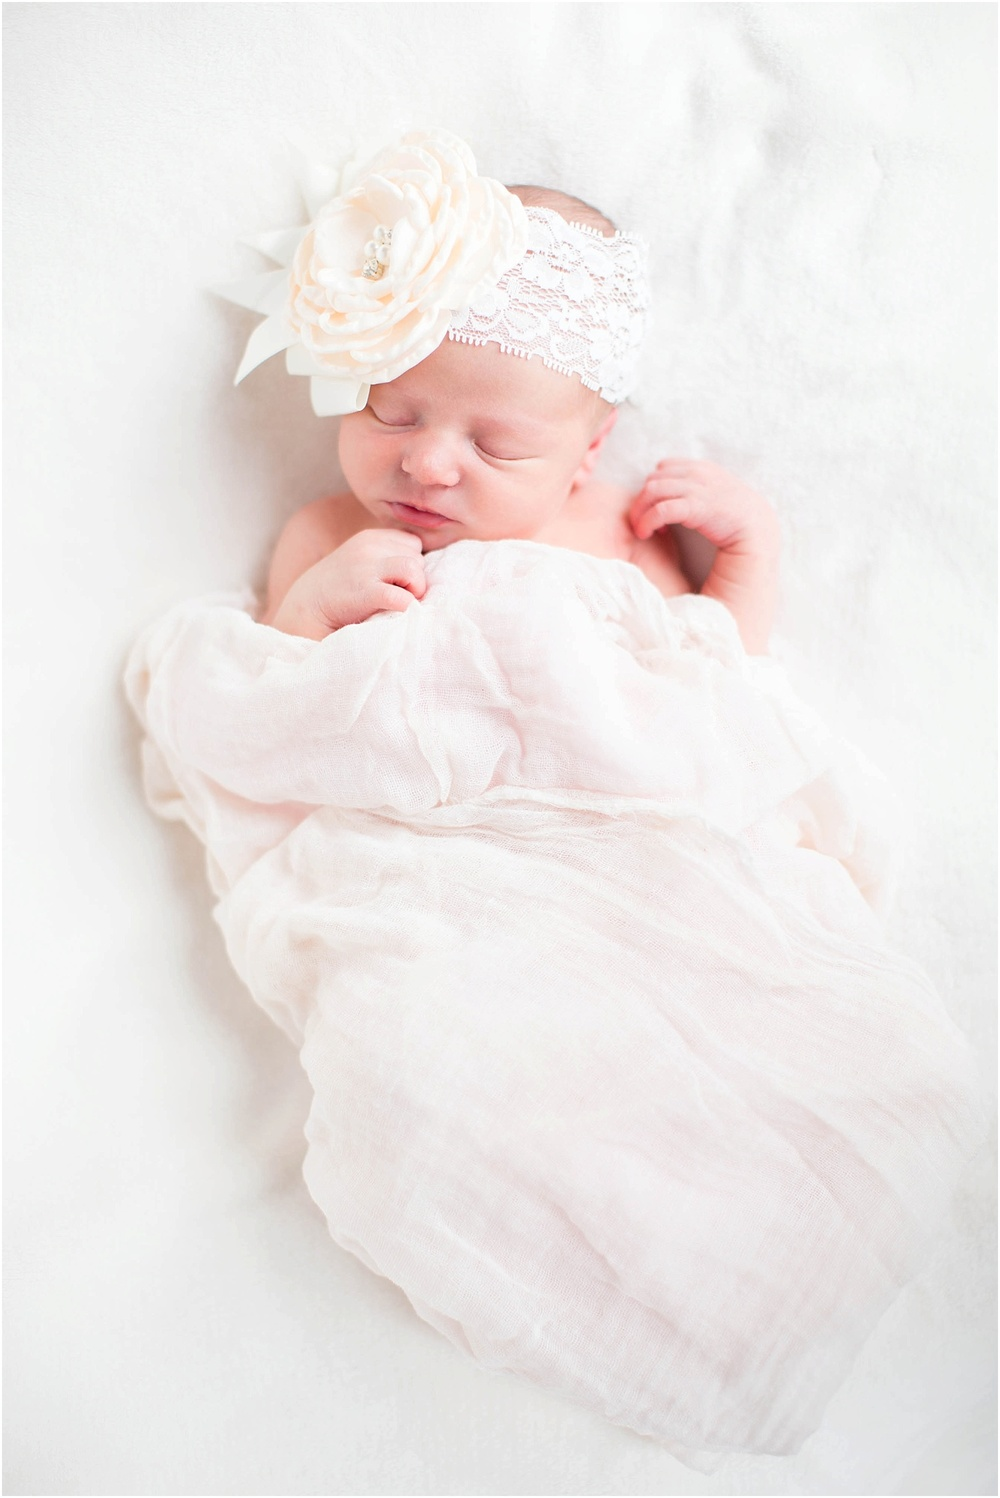 Ashley Powell Photography | Newborn Session | Roanoke, Virginia